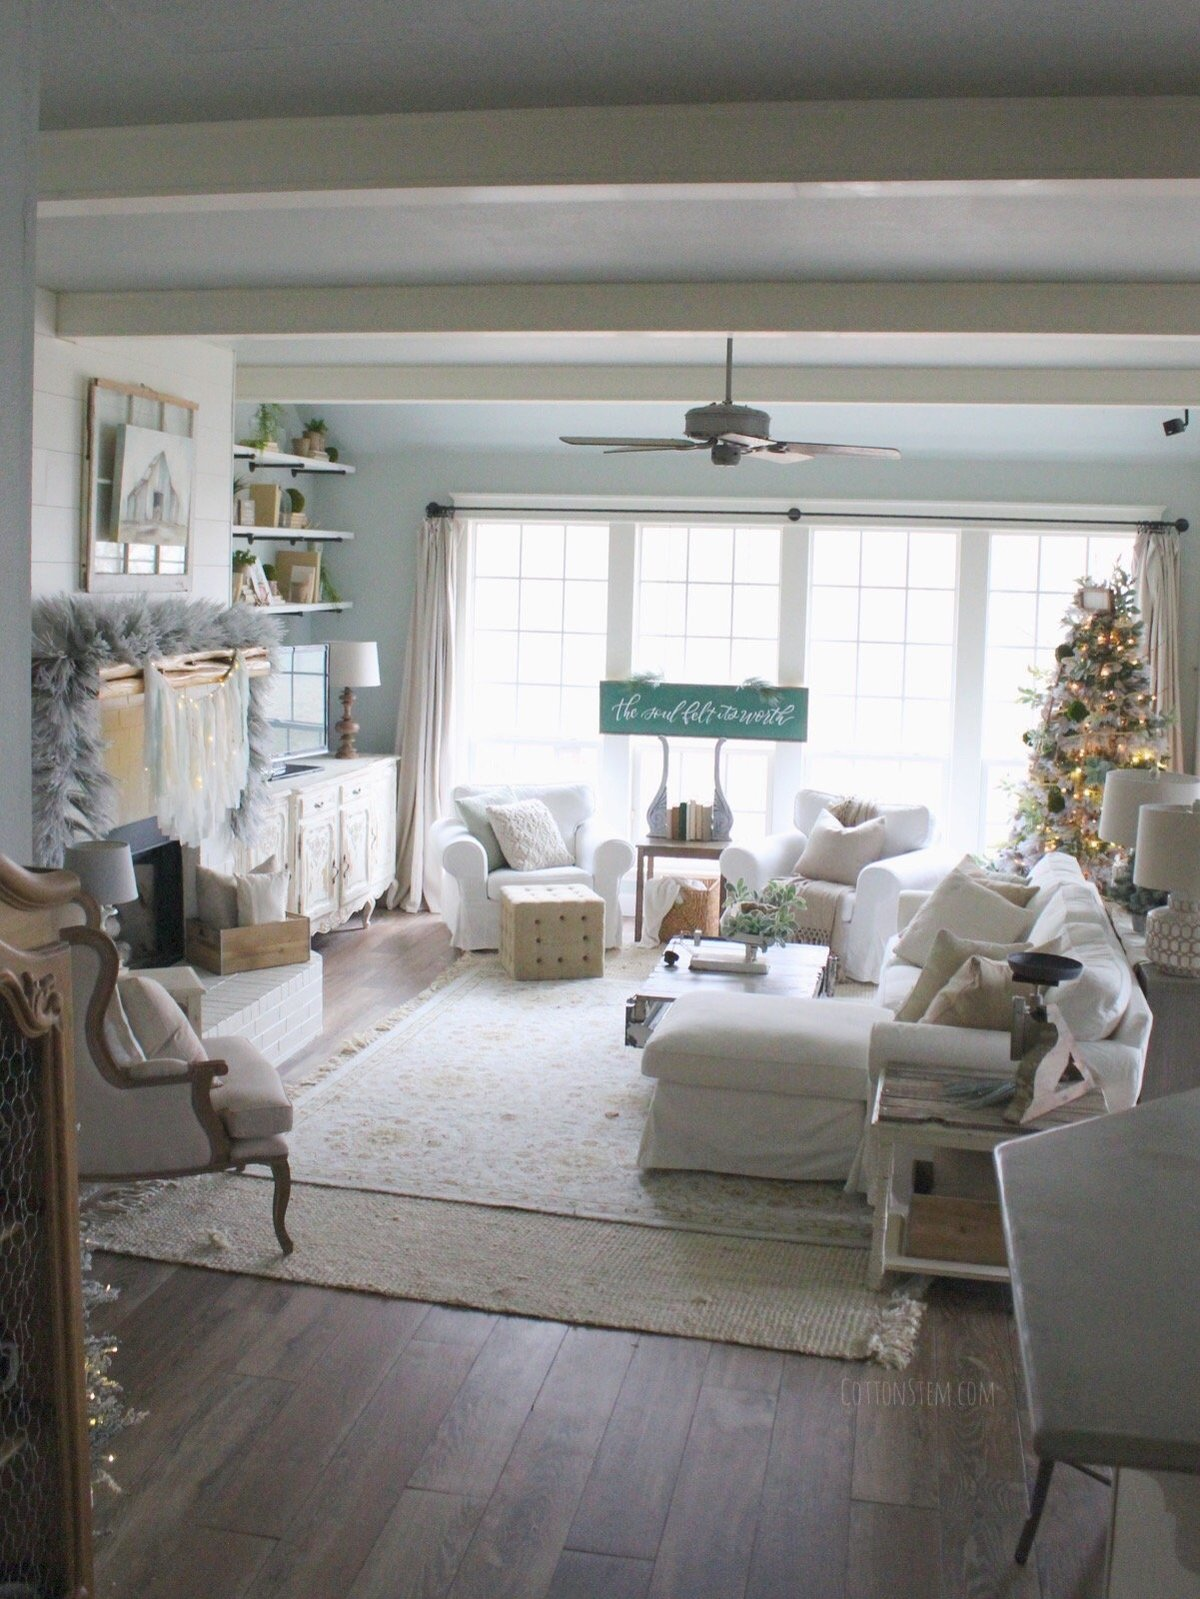 CottonStem.com farmhouse livingroom christmas decor